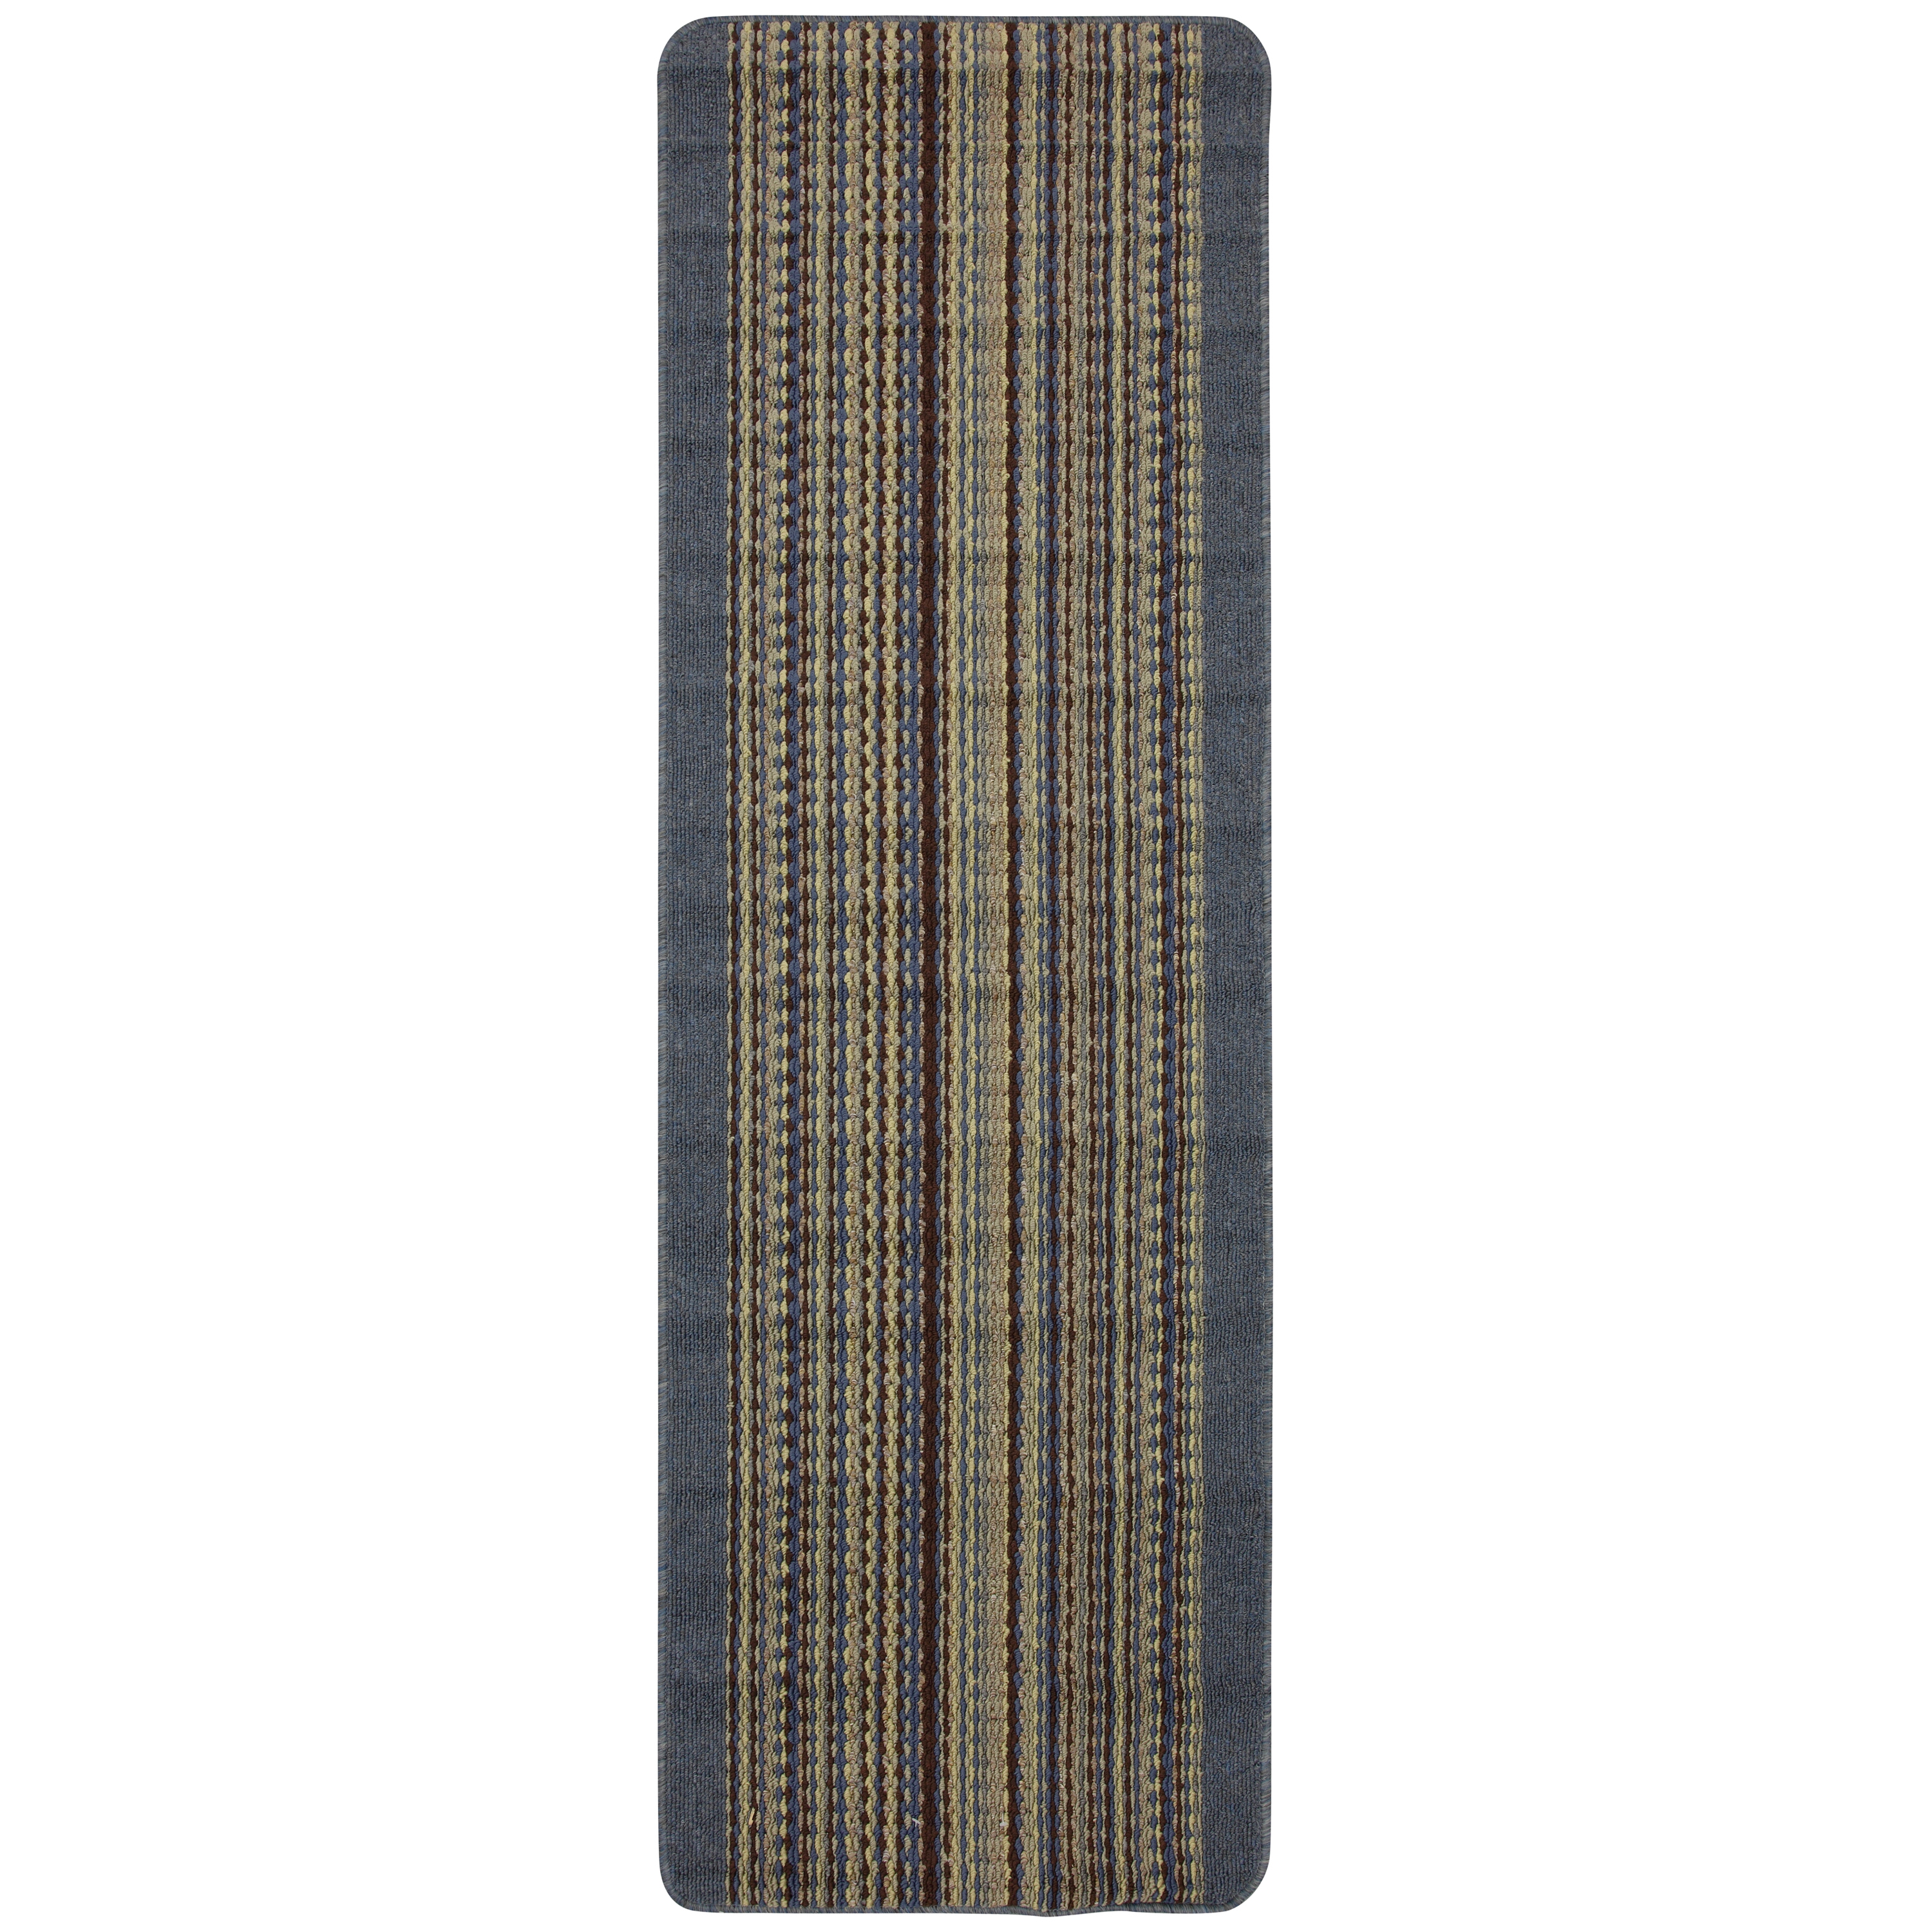 Mainstays Apollo Area Rug